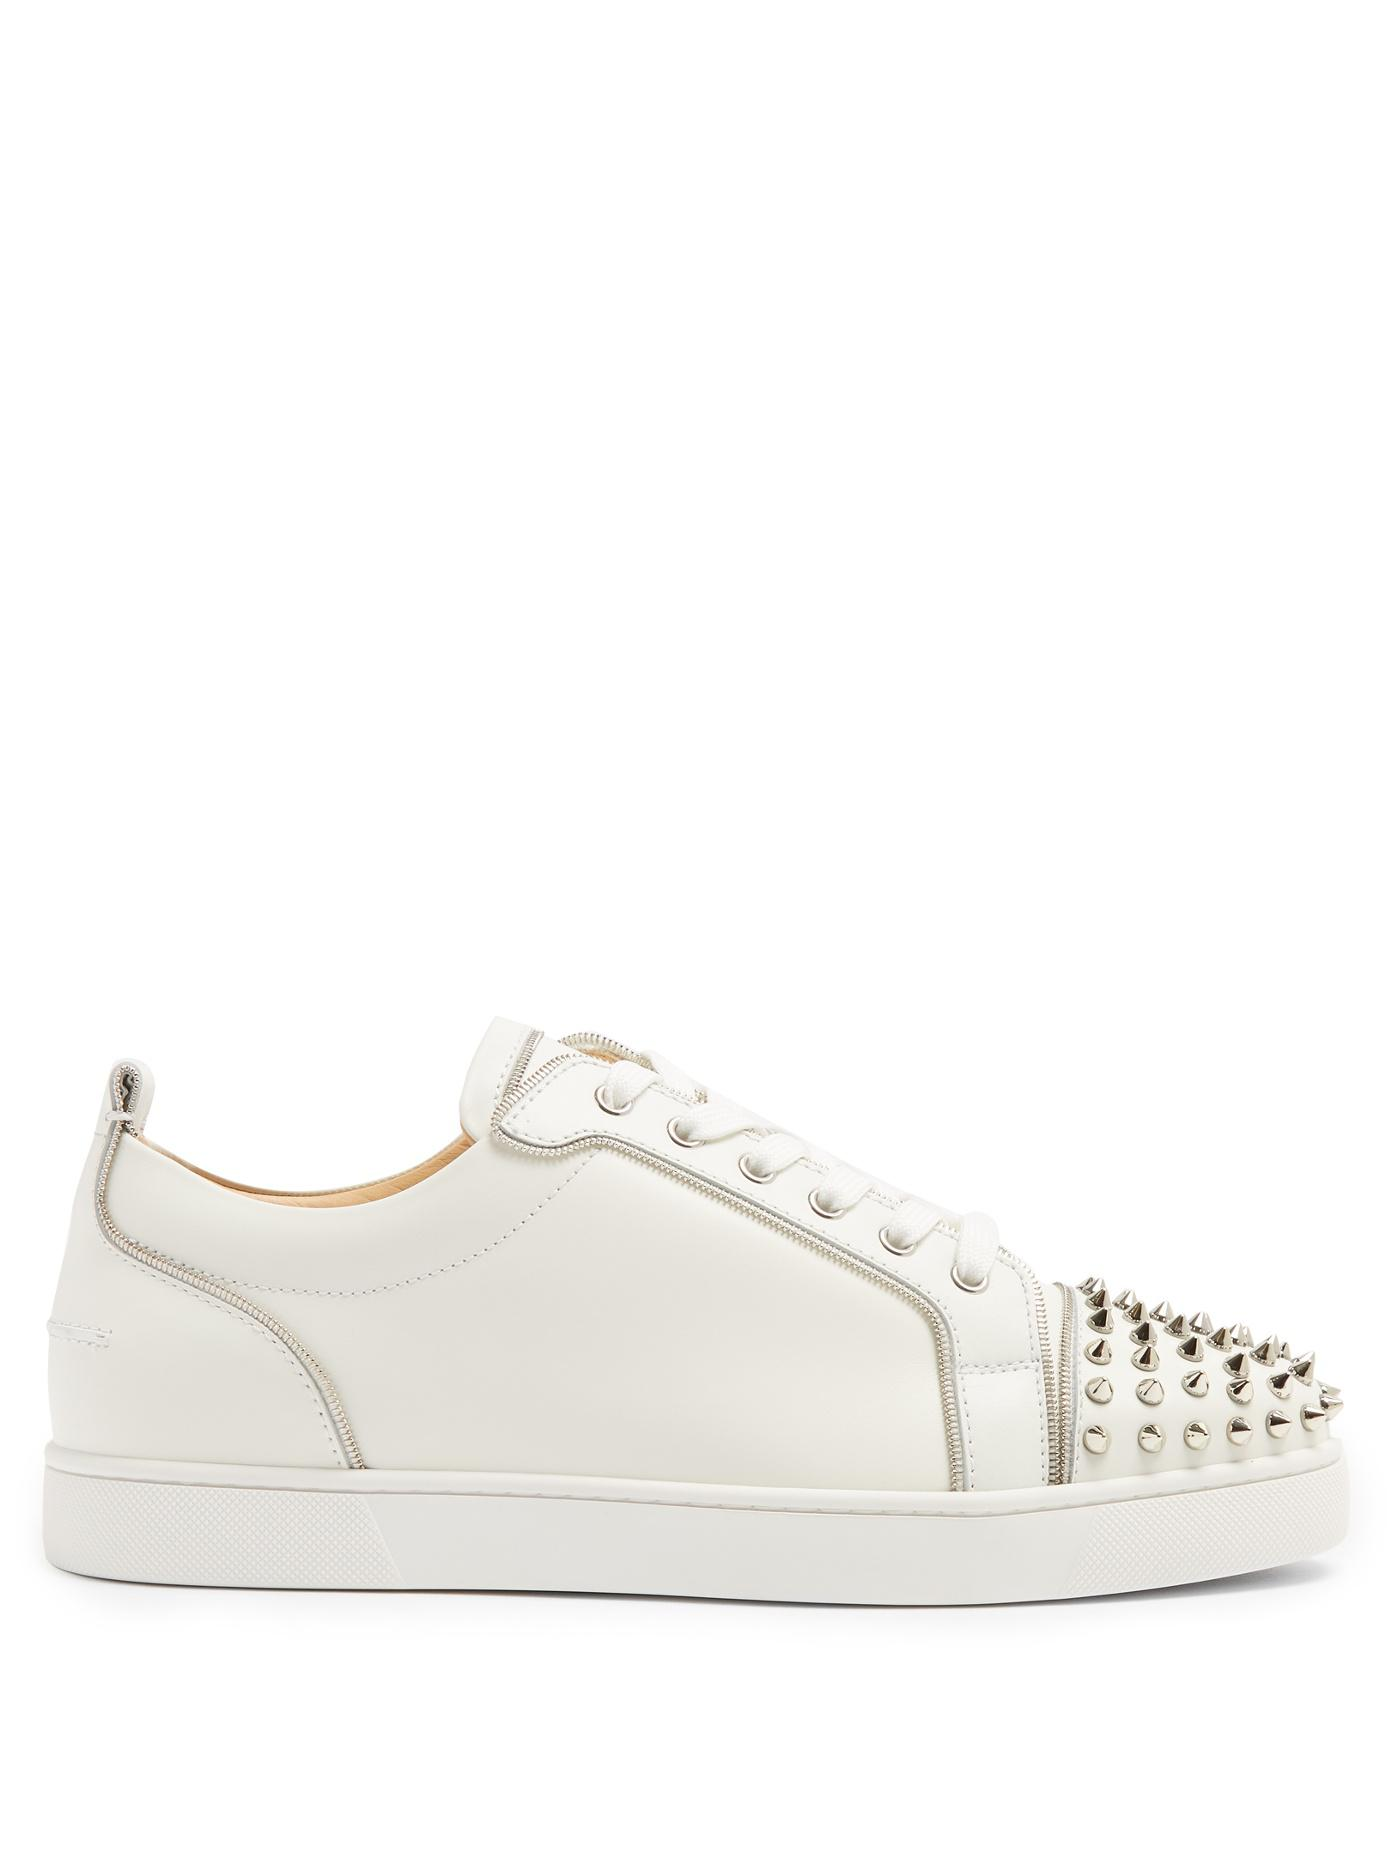 on sale ec2b6 63723 Men's White Junior Zip Spike-embellished Low-top Sneakers